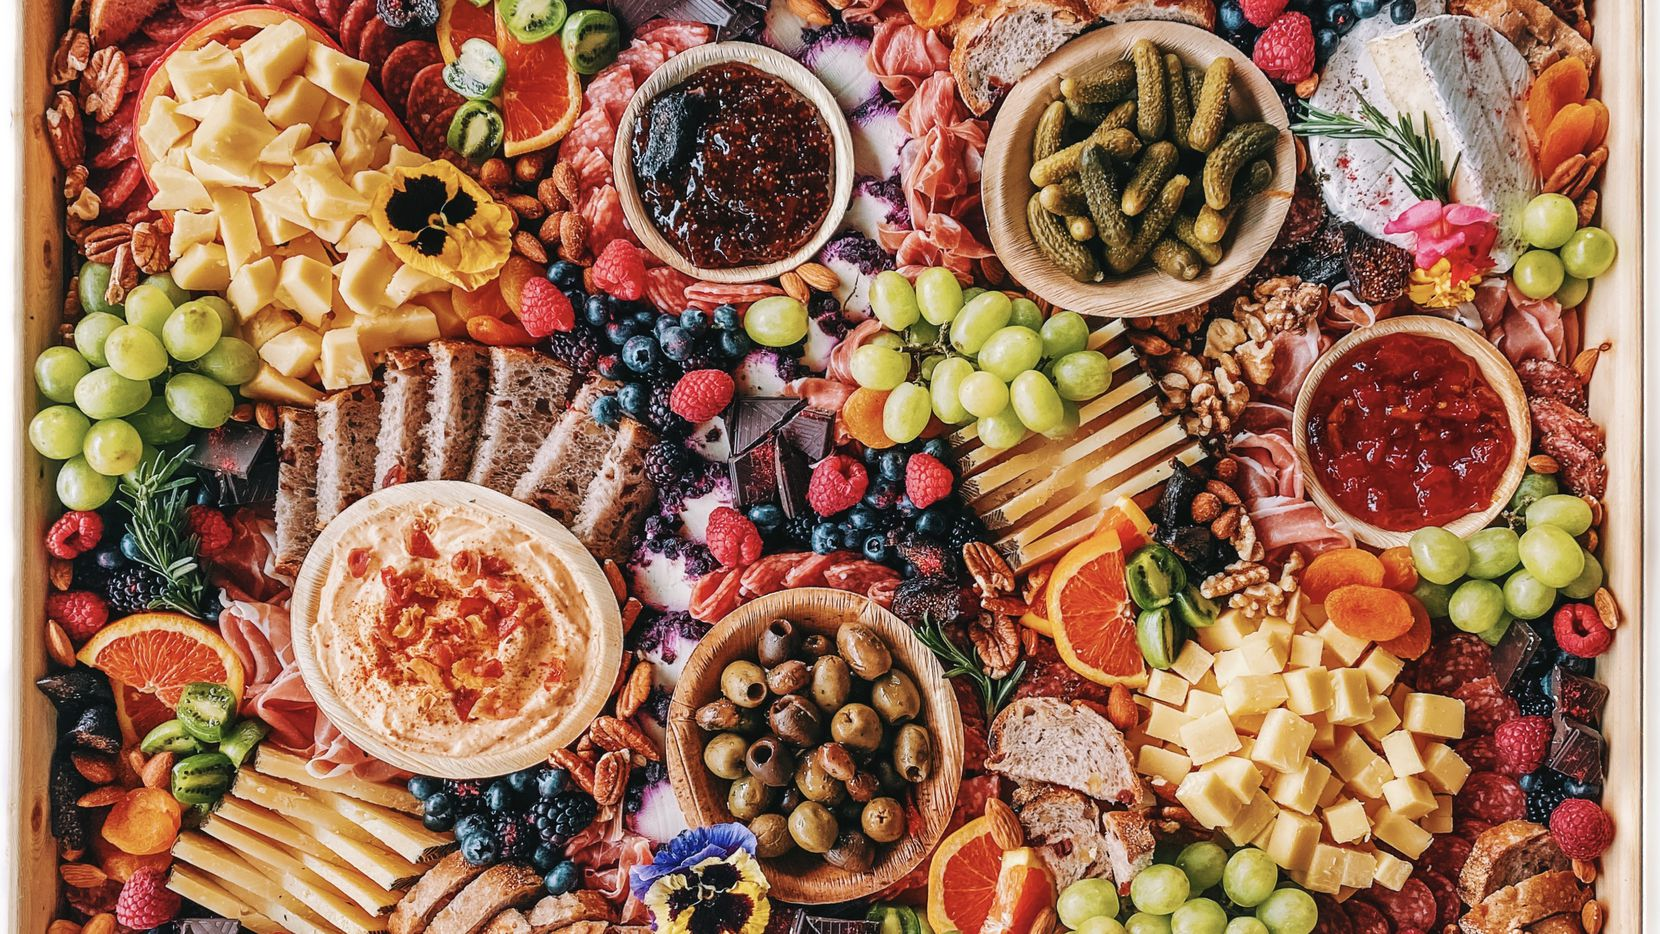 Ayesha Patel founded Ya Ya Yum Boards, a Grapevine business that sells charcuterie boards, dessert boards, and even brunch boards. Her store is located in Downtown Grapevine.